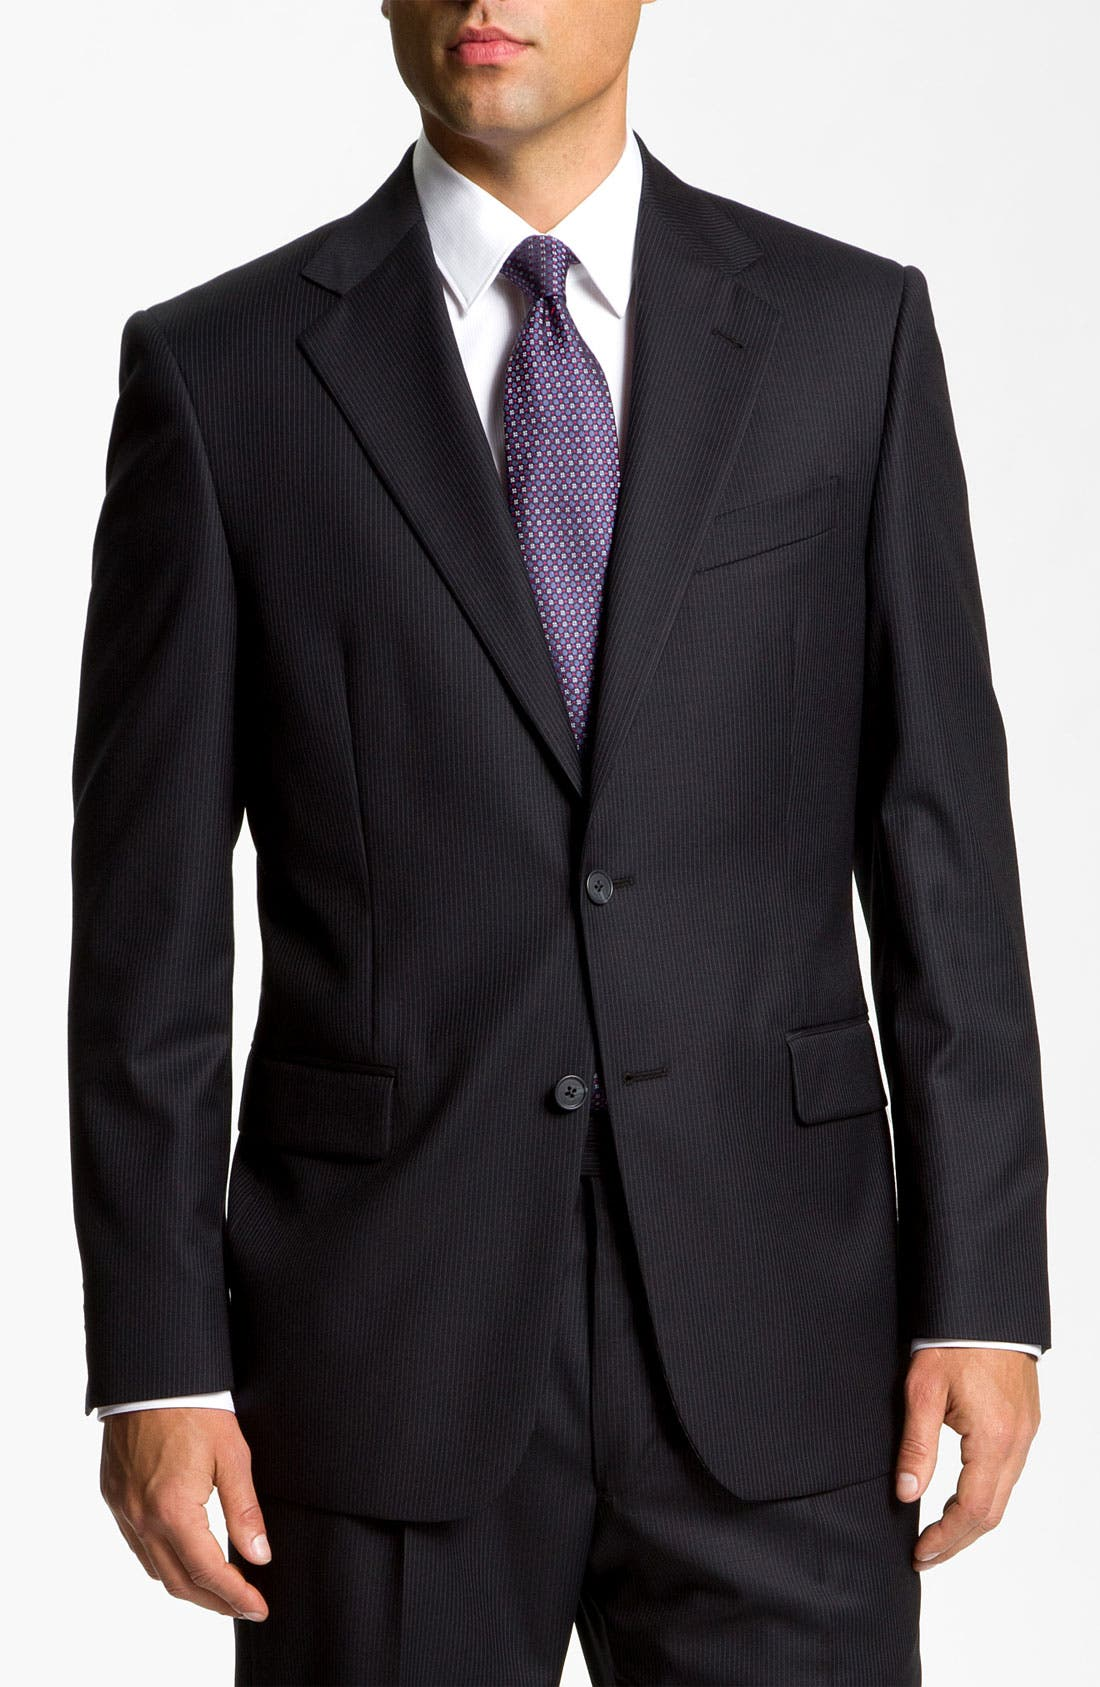 Alternate Image 1 Selected - Joseph Abboud 'Signature Silver' Pinstripe Suit